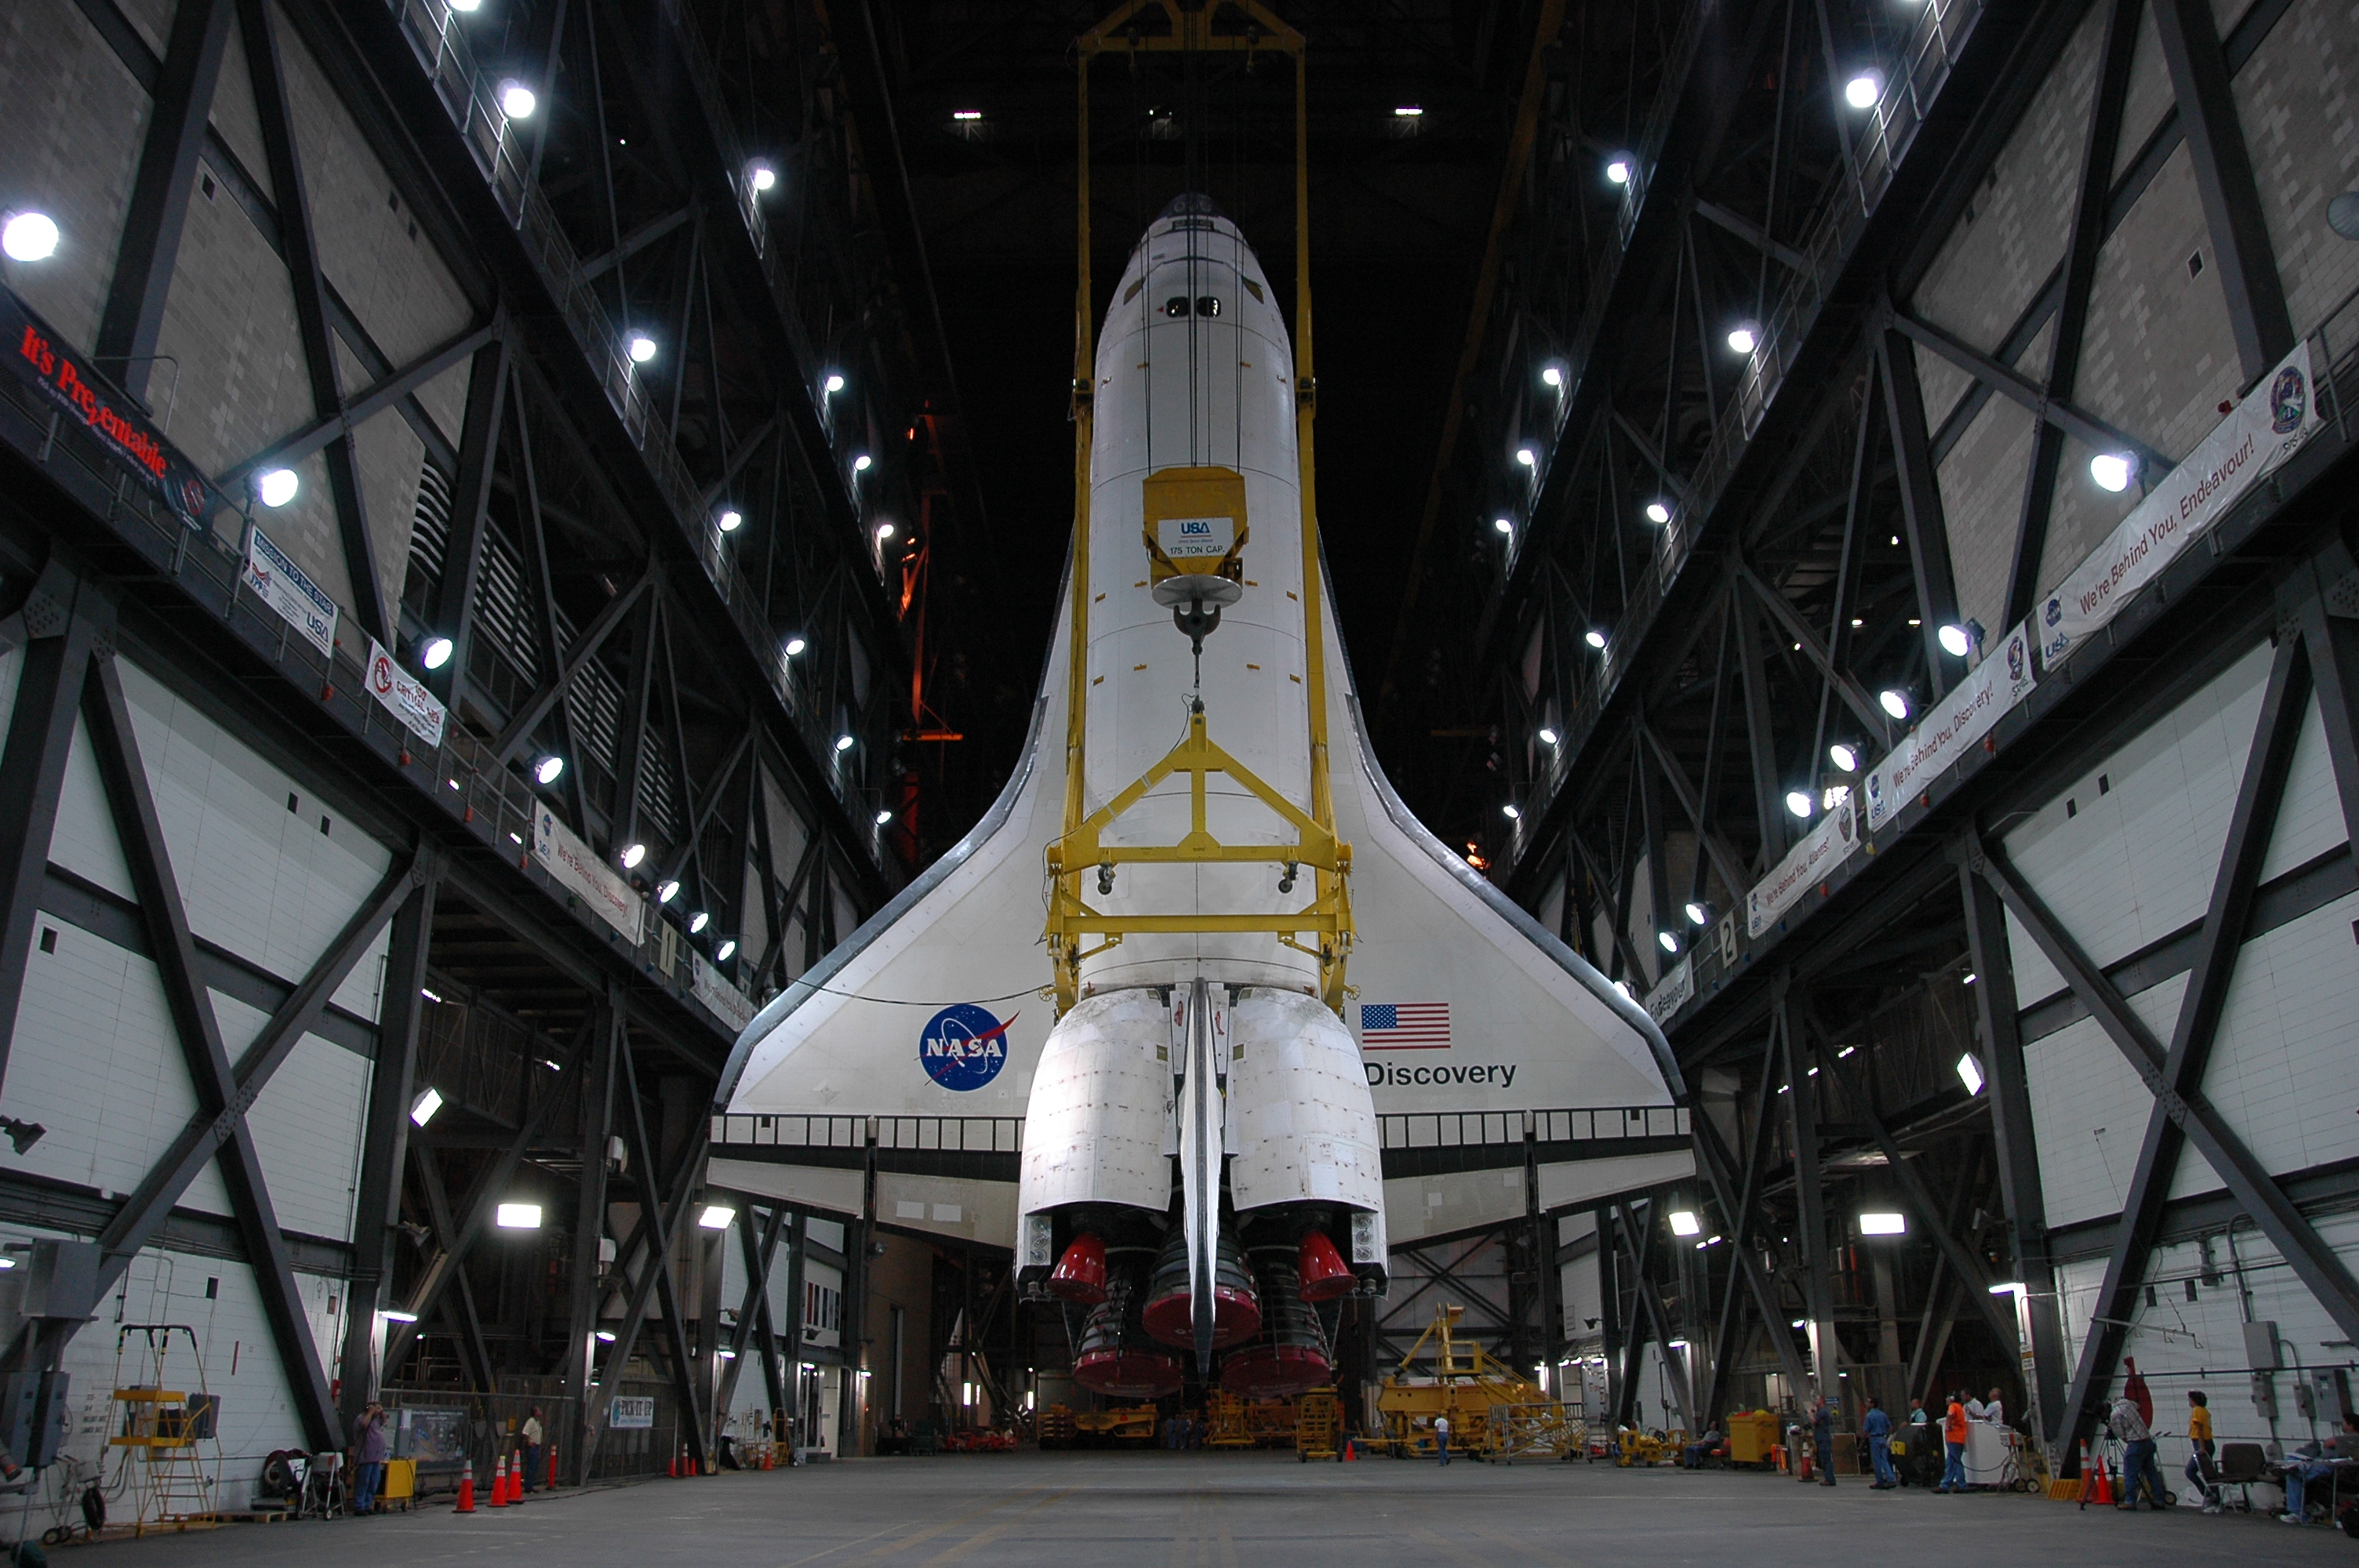 a nasa aircraft in hangar - photo #3